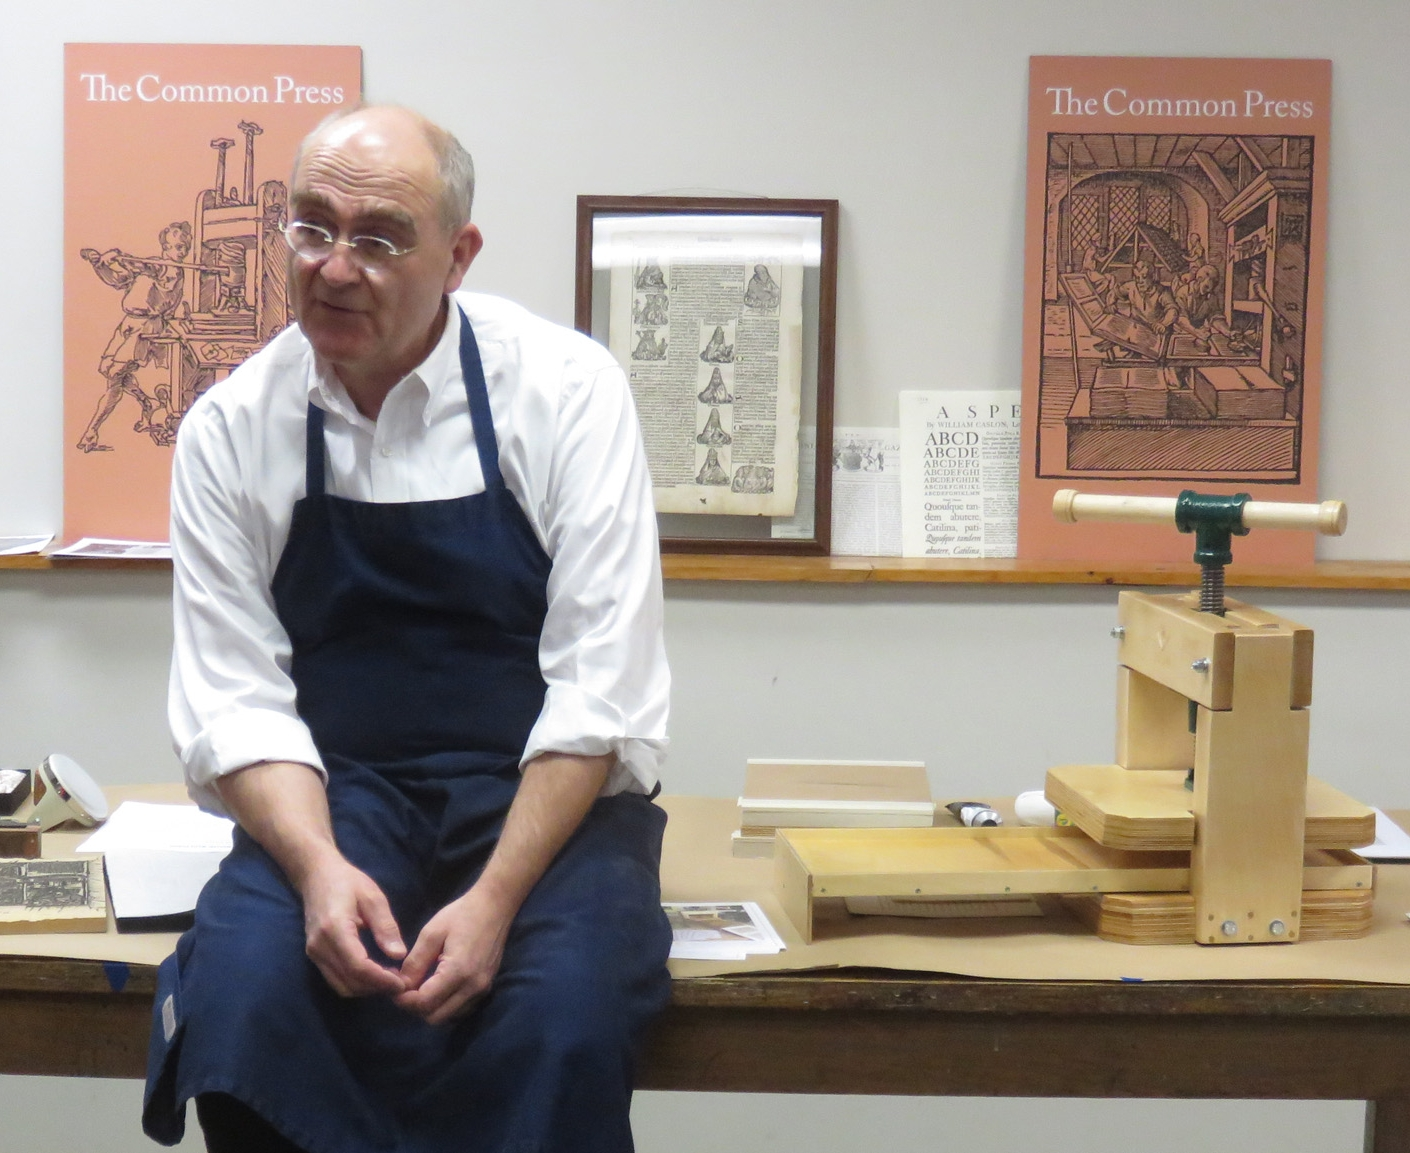 Josef Beery Sells and Demonstrates the BookBeetle Press